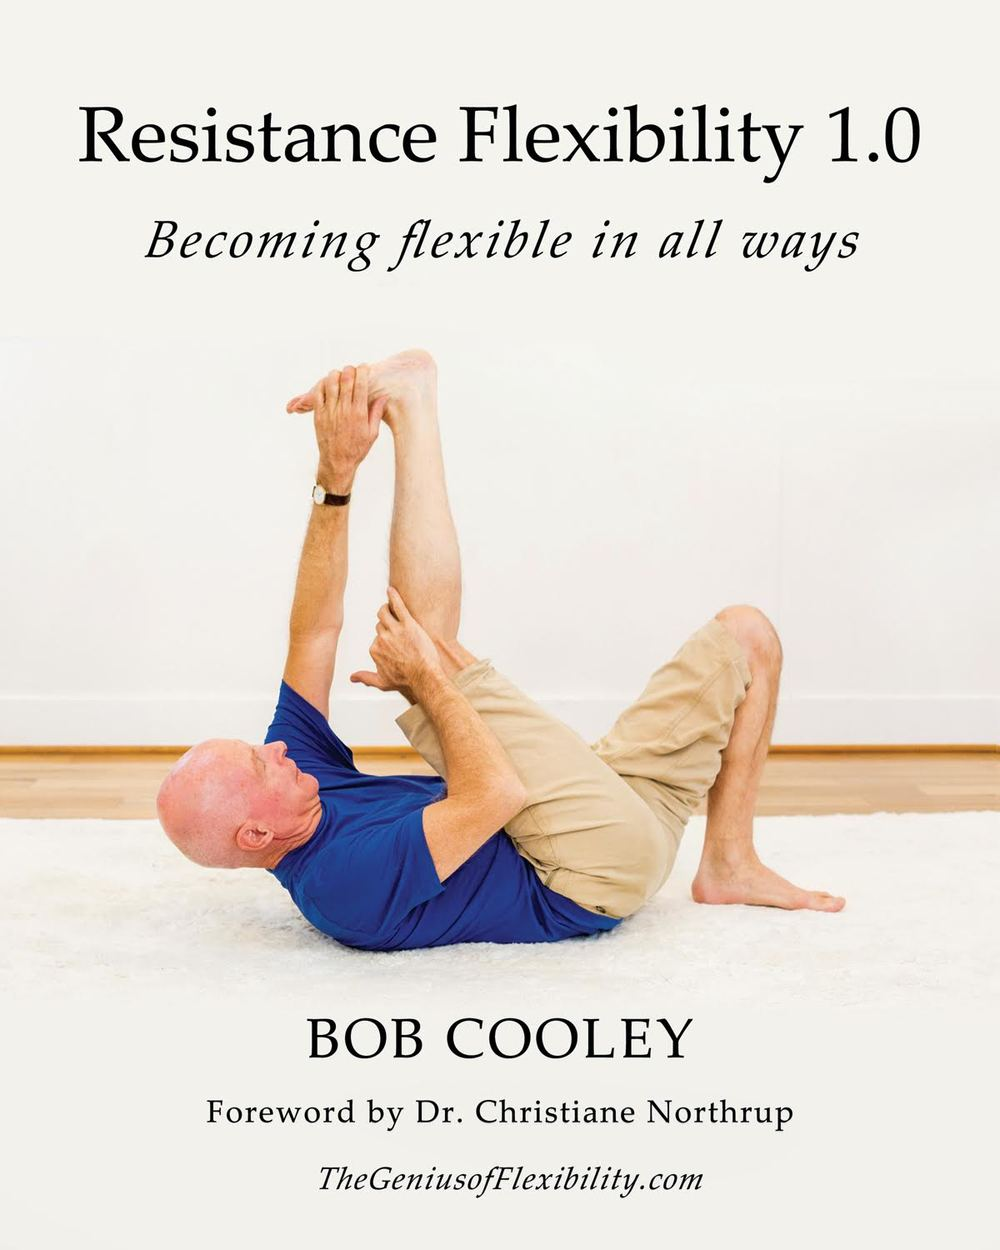 Bob Cooley is internationally known as an expert on biomechanical flexibility and strength, and its relation to physiological and psychological health, authoring: The Genius of Flexibility — The smart way to stretch and strengthen your body (Simon and Schuster 2005). He is also known for his GPT theories and research, authoring: The 16 Geniuses — Sixteen Genetic Personality Types (release 2012). www.thegeniusofflexibility.com